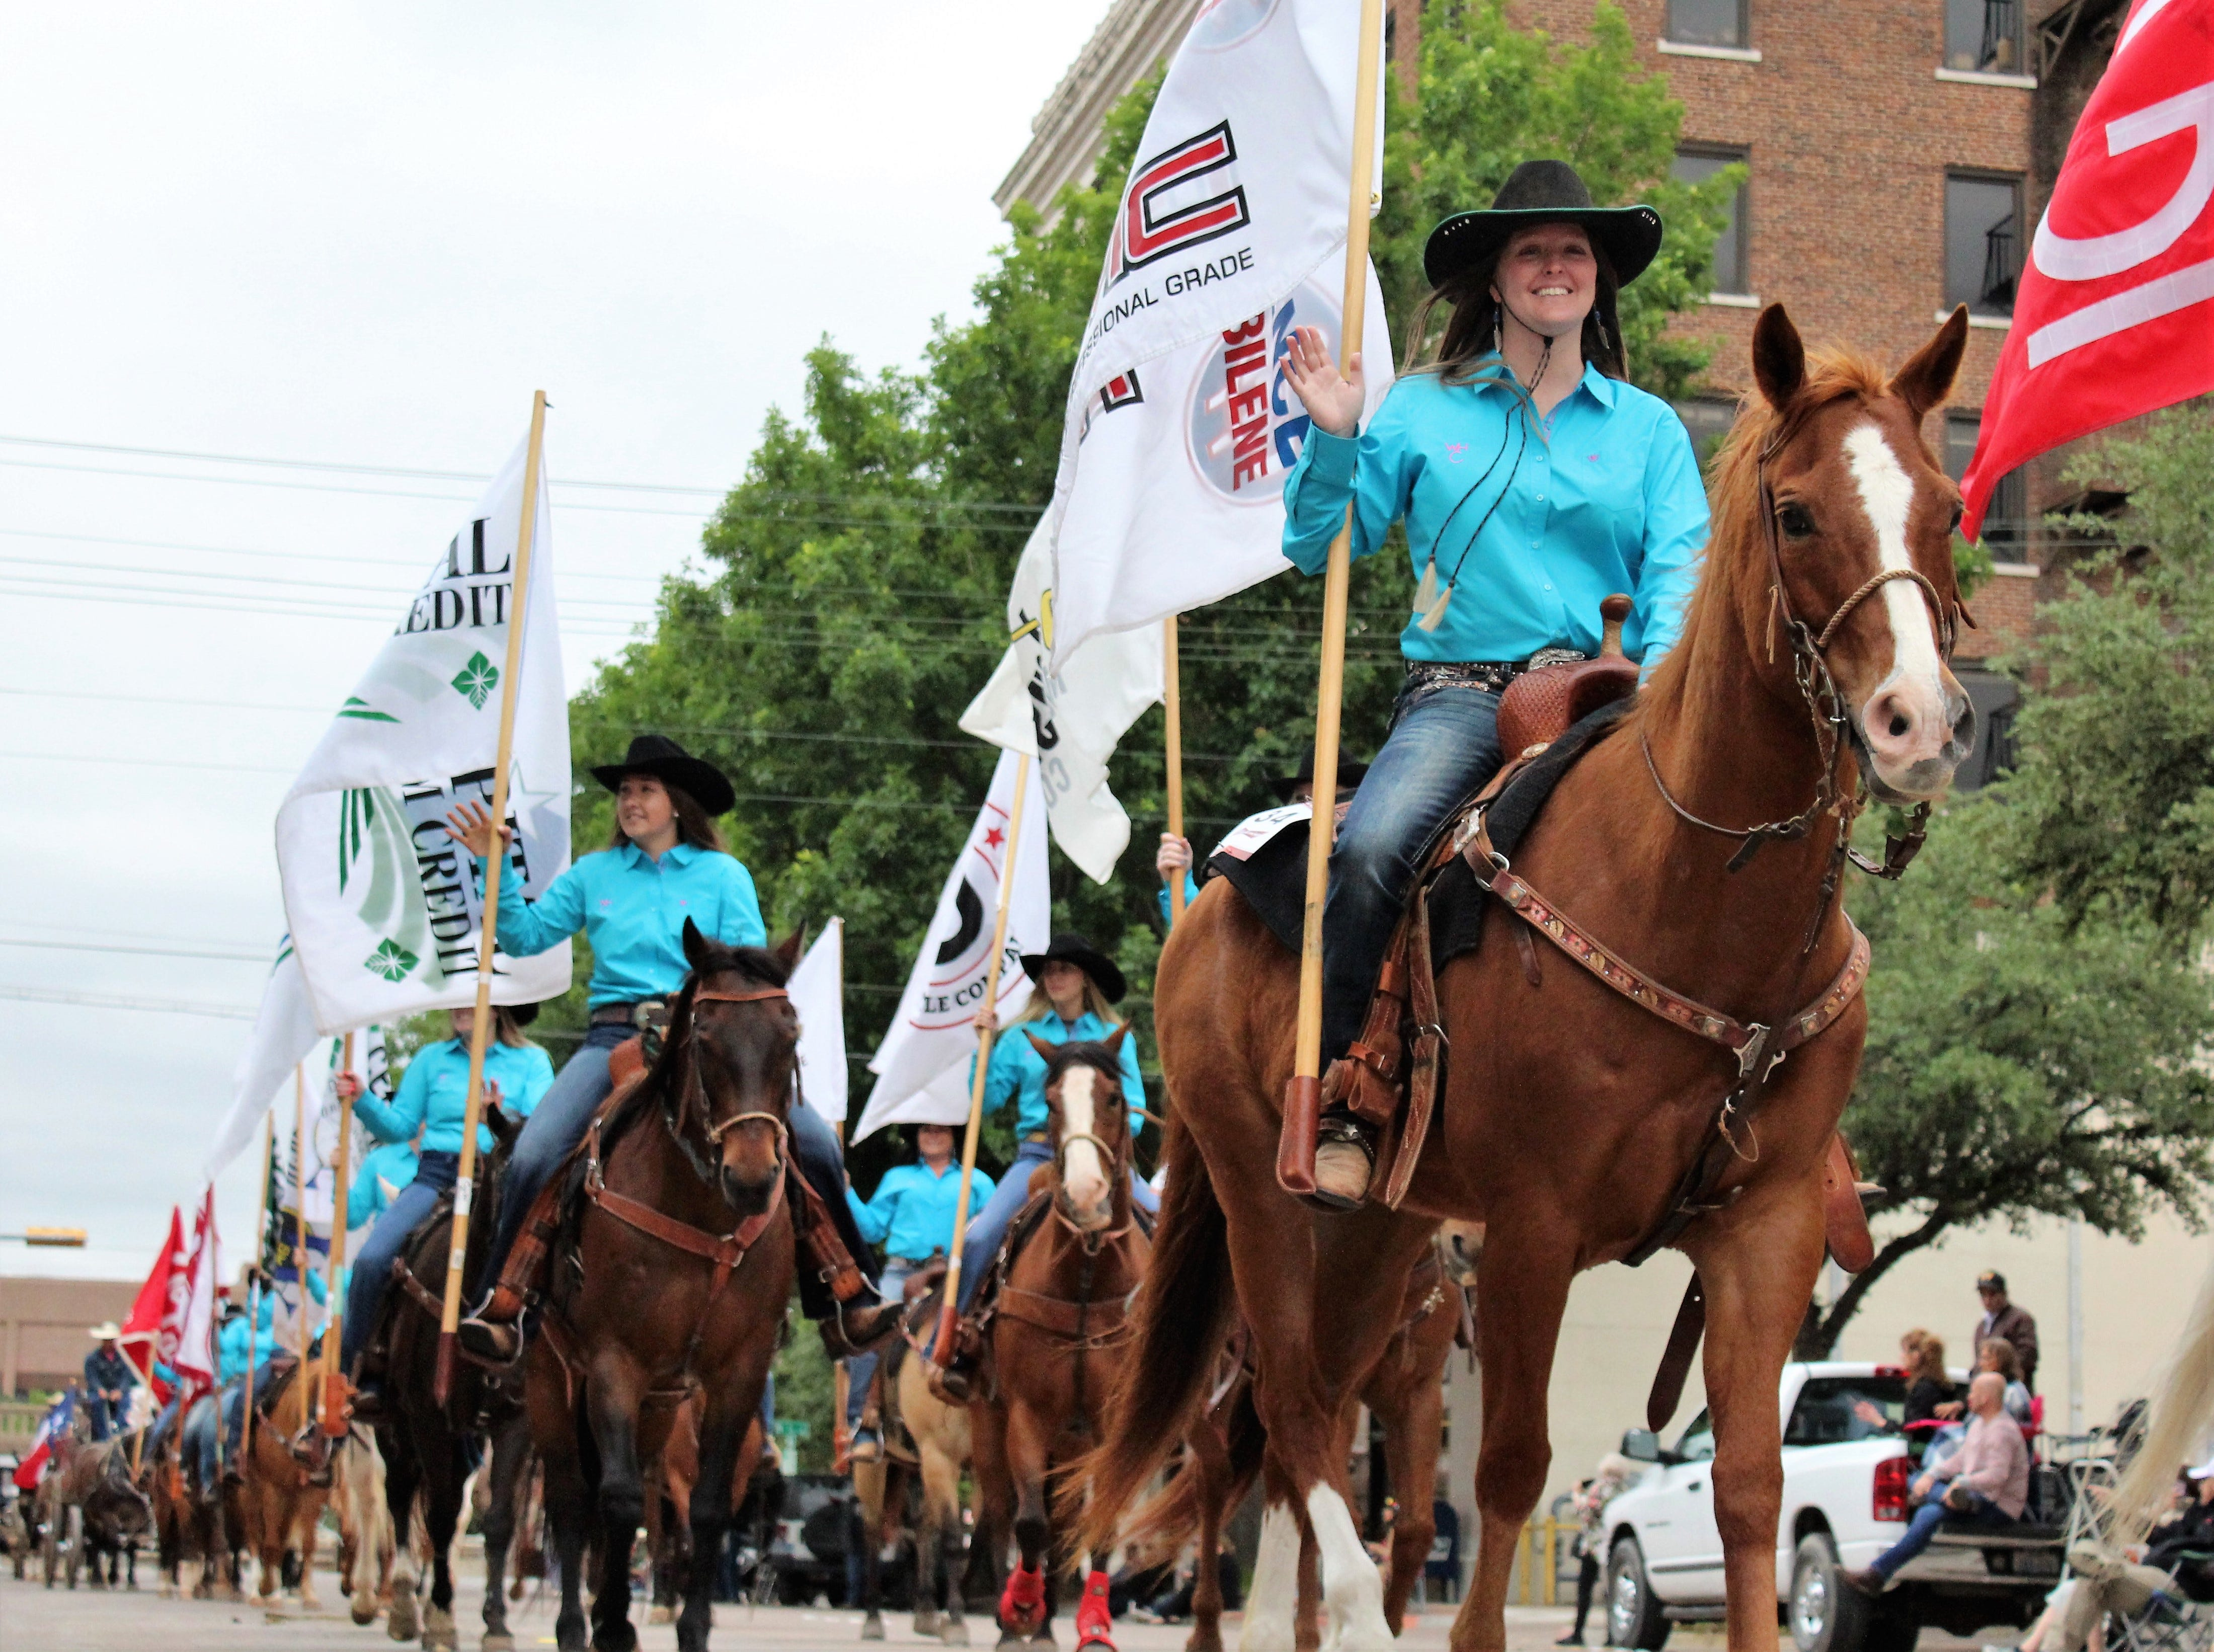 Cowgirls wave from horses at the start of Thursday evening's Western Heritage Classic parade in downtown Abilene. The annual May event continues Saturday at the Taylor County Expo Center. May 9, 2019.